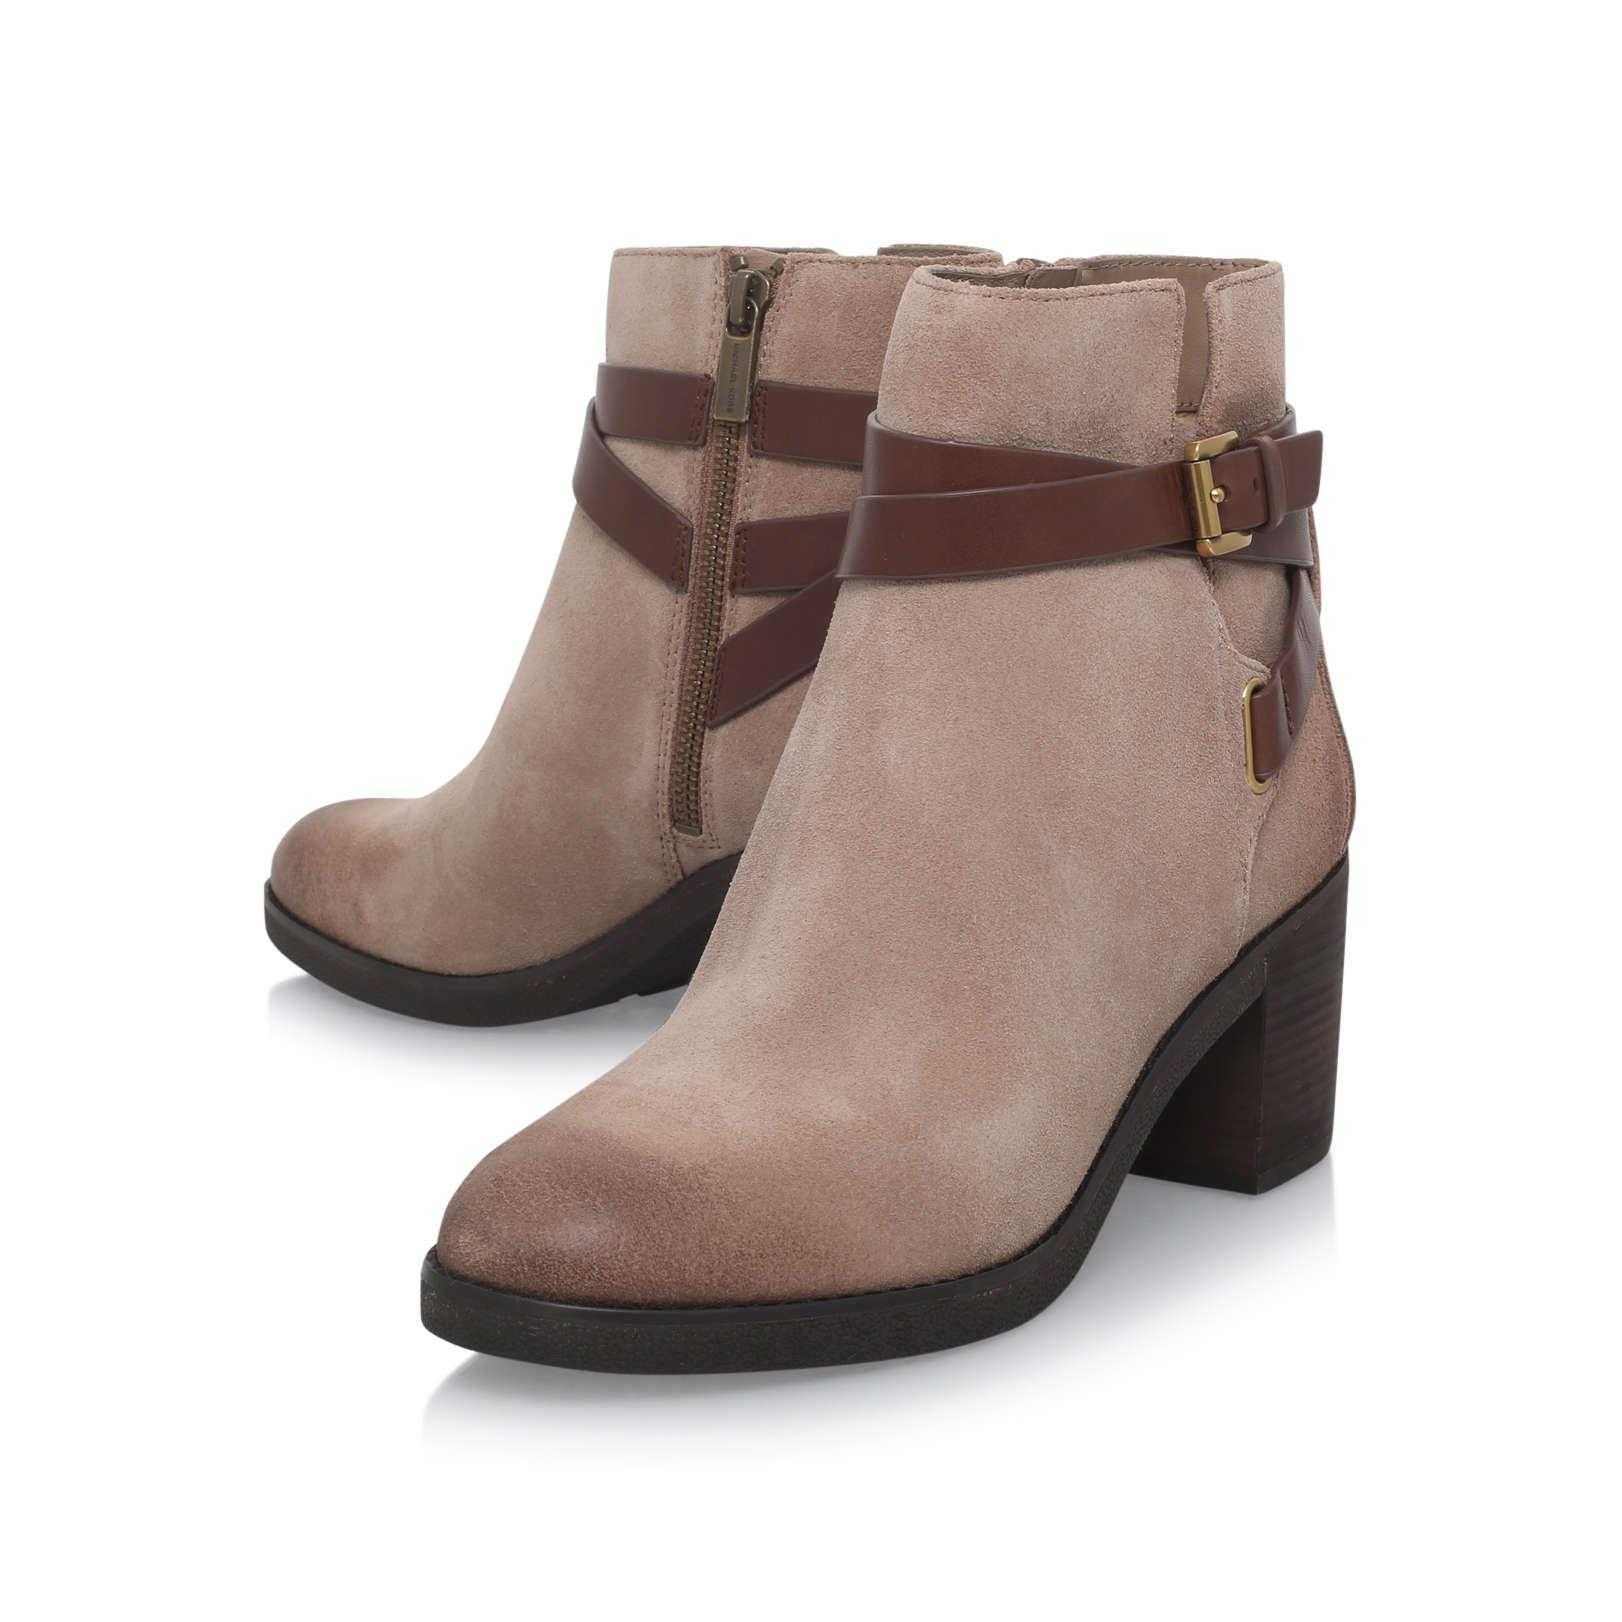 MICHAEL Michael Kors Fawn Bootie Taupe Suede Ankle Boots in Brown